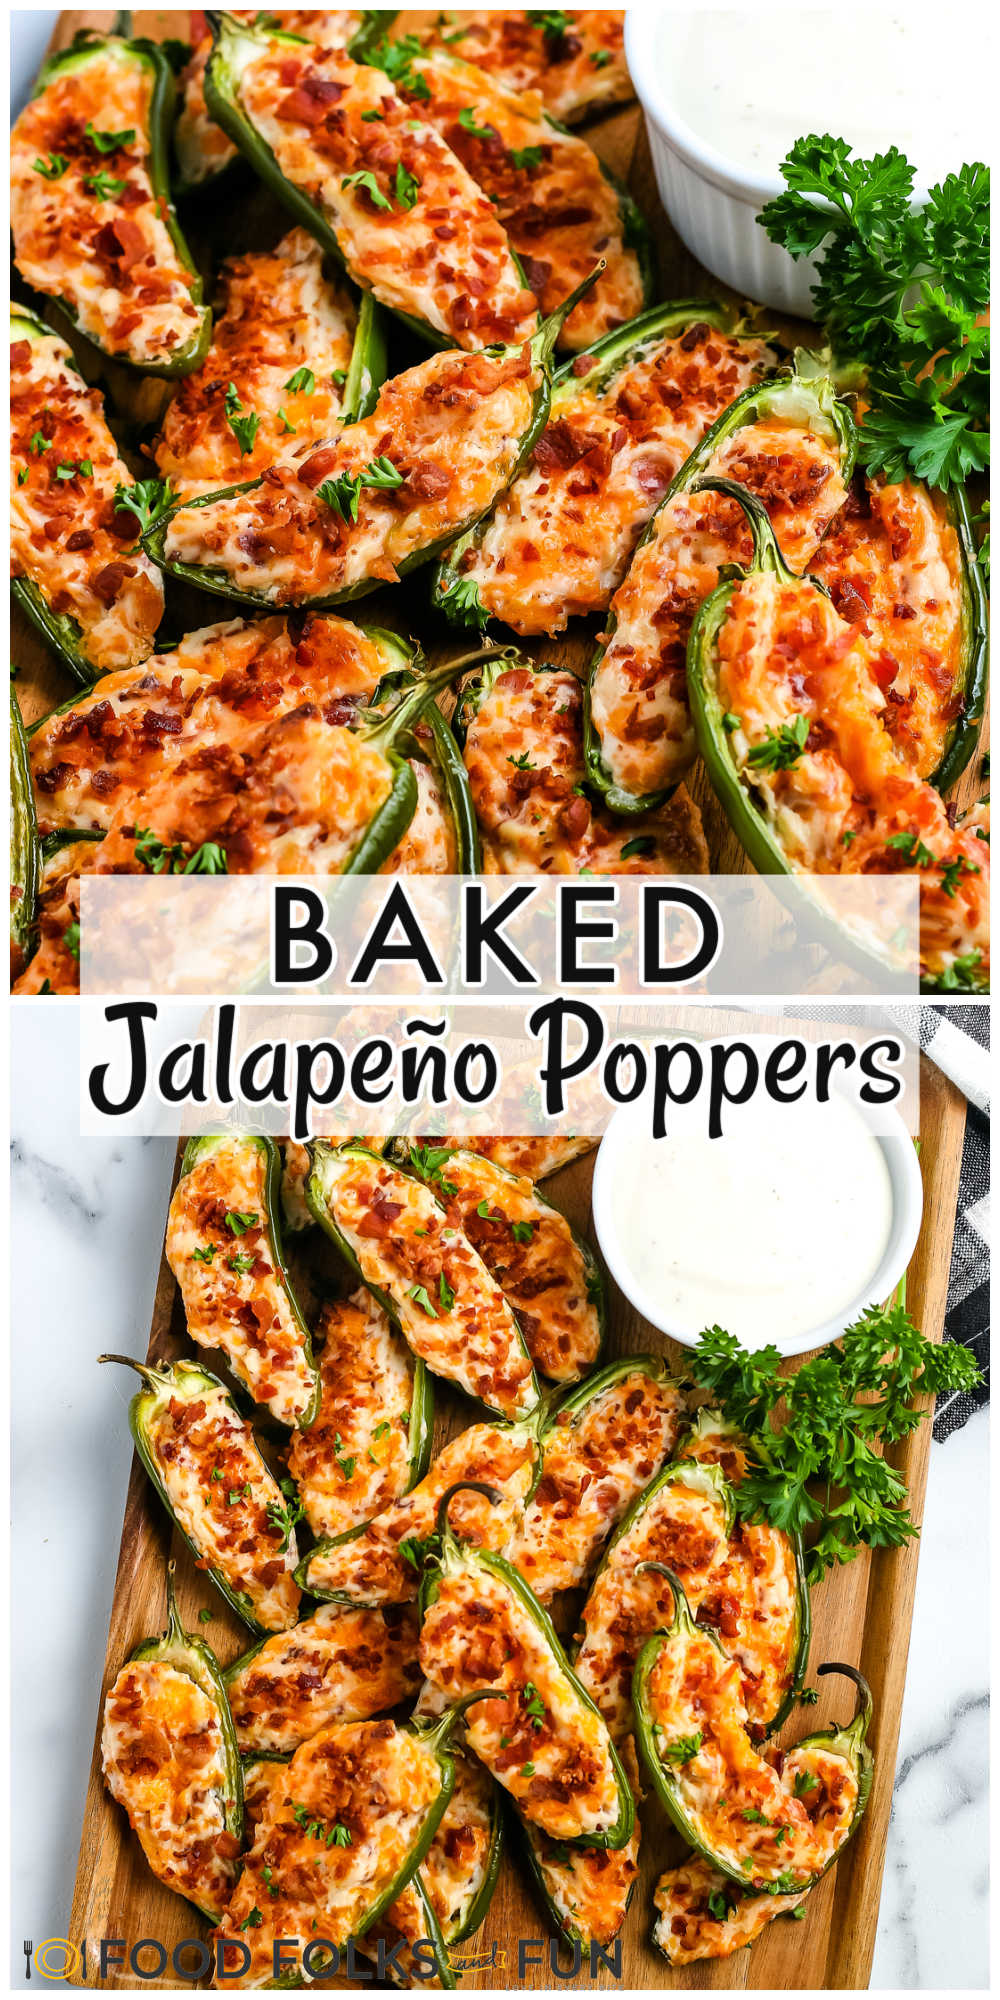 These Baked Jalapeño Poppers are easy to make, and they feed a crowd. They're stuffed with cream cheese, cheddar, and bacon! via @foodfolksandfun